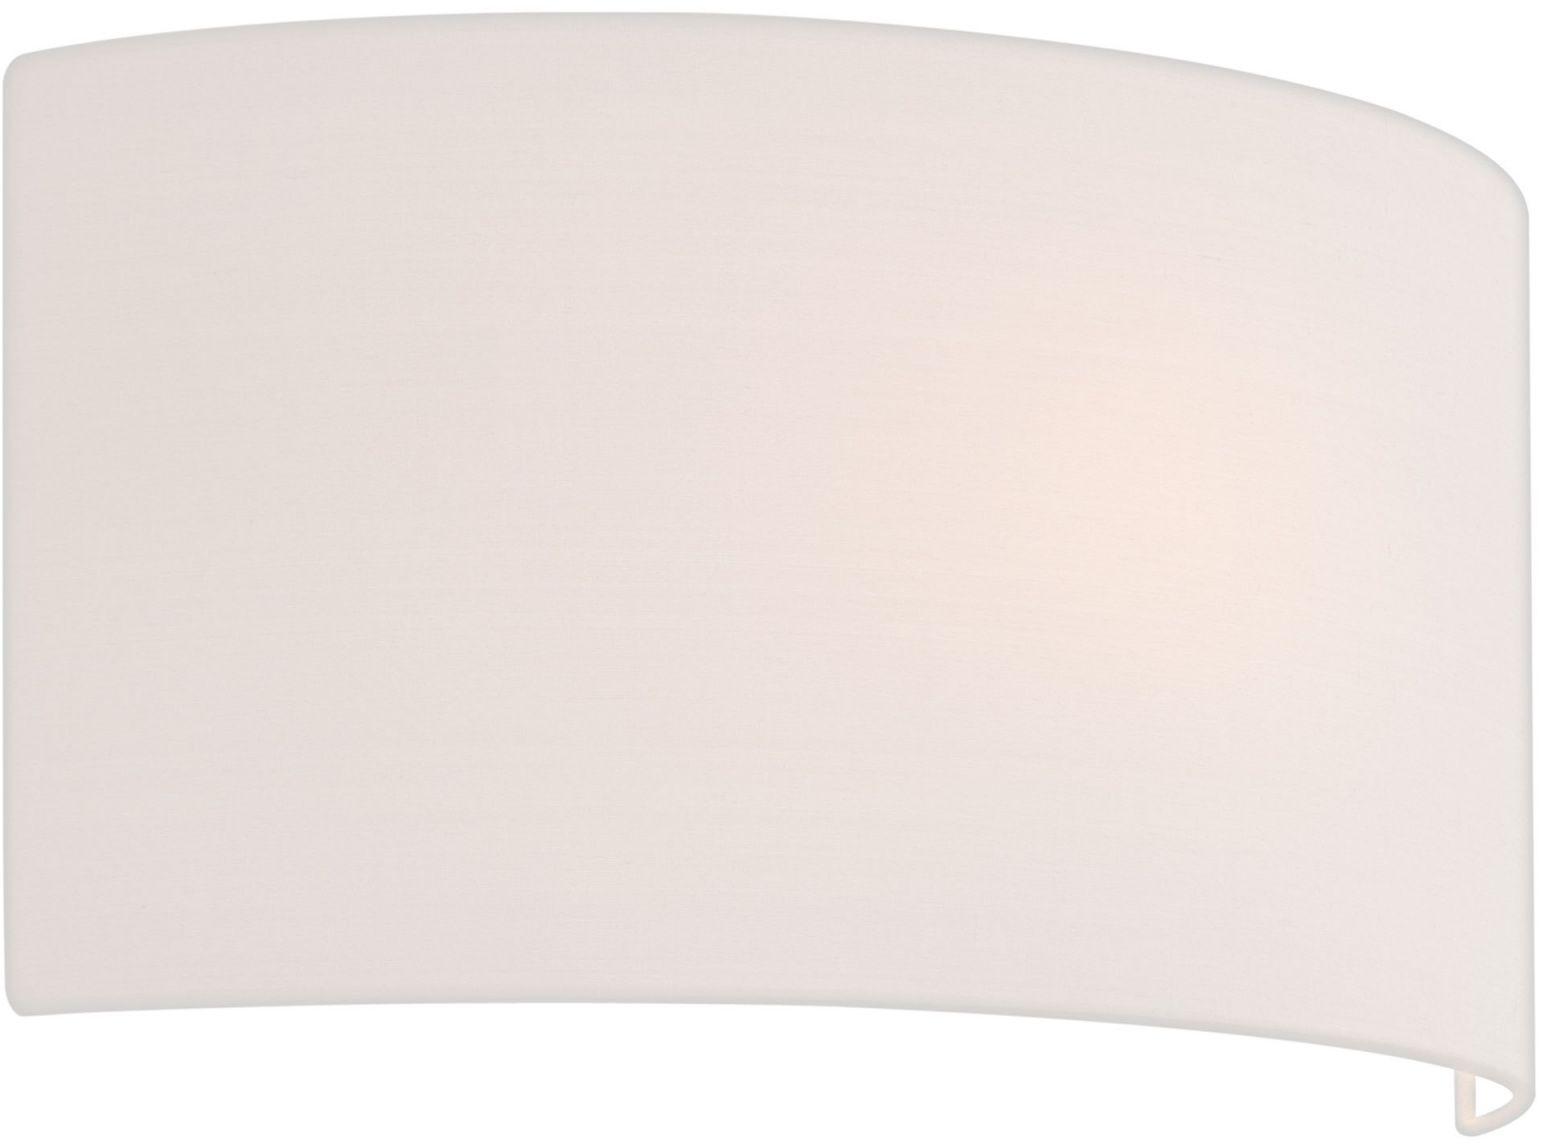 Abażur Semi Drum 4160 Biały Astro Lighting